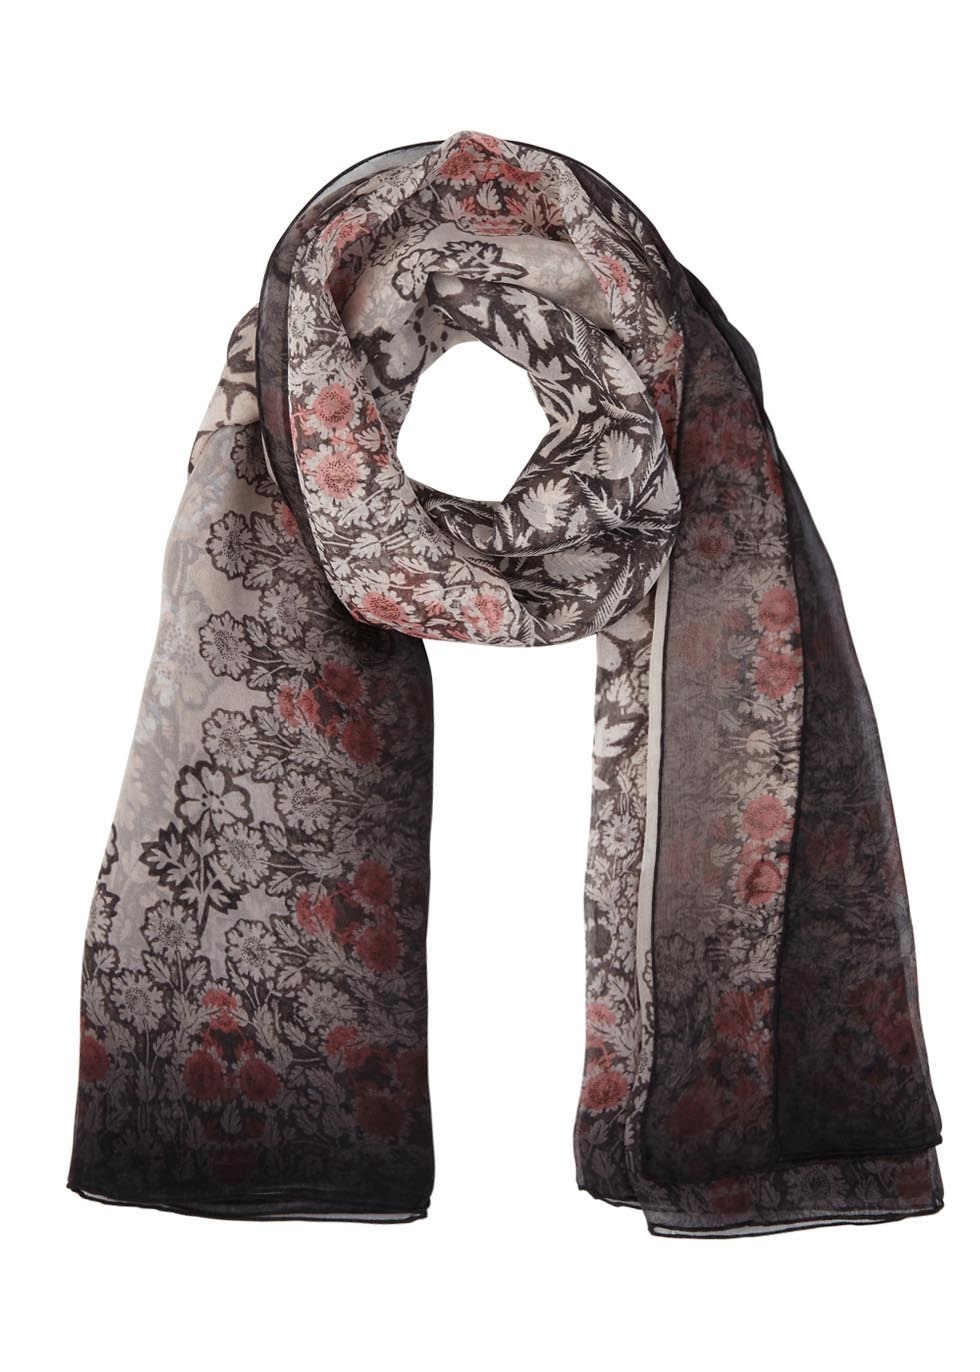 Rose Floral Print Chiffon Scarf - predominant colour: ivory/cream; secondary colour: pink; occasions: casual, creative work; type of pattern: large; style: regular; size: standard; material: fabric; pattern: florals; season: s/s 2016; wardrobe: highlight